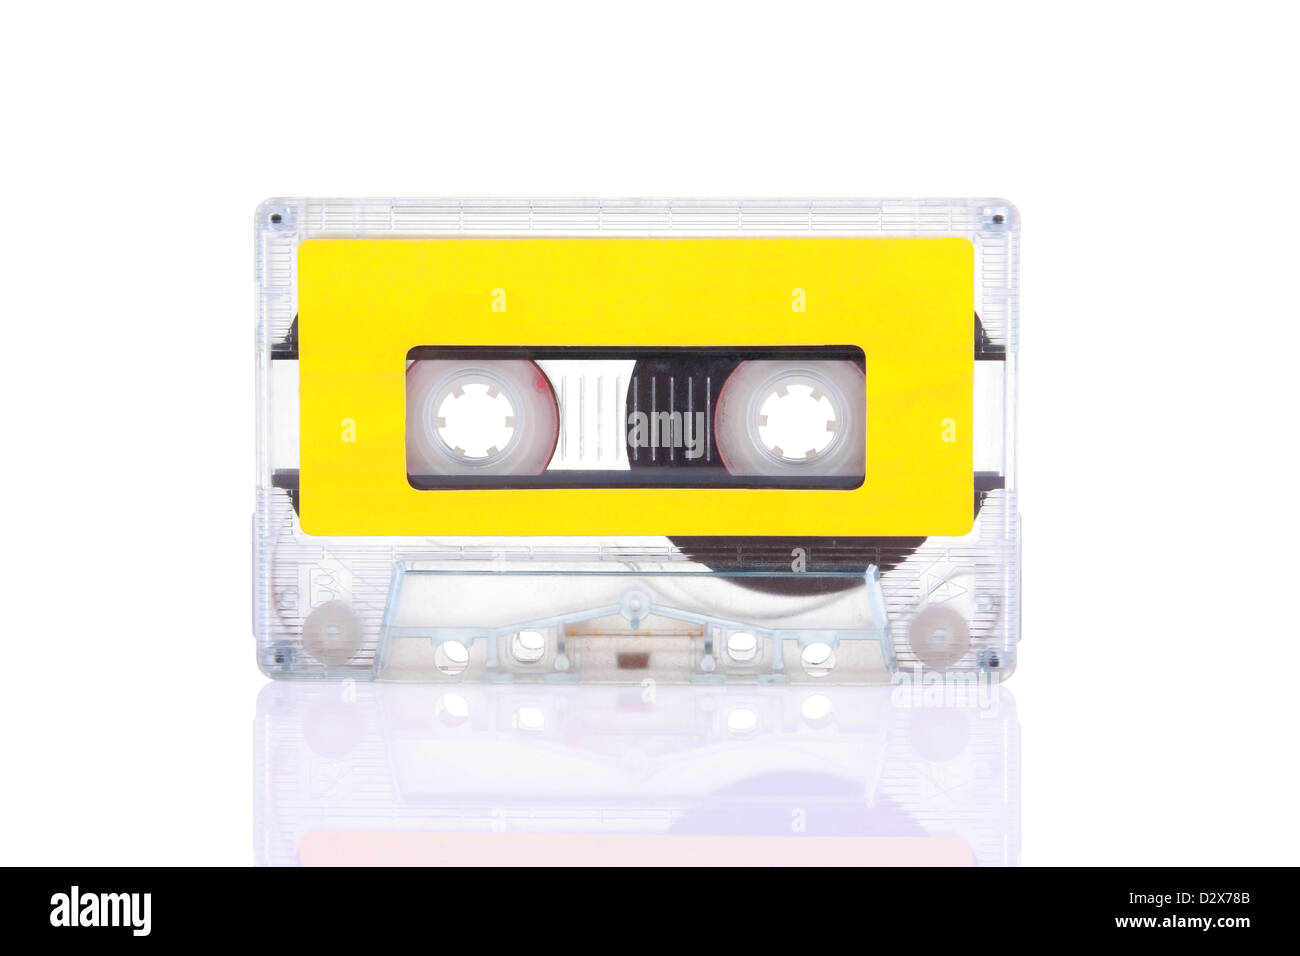 Compact Cassette isolated on white with blank yellow label. Including clipping path. - Stock Image